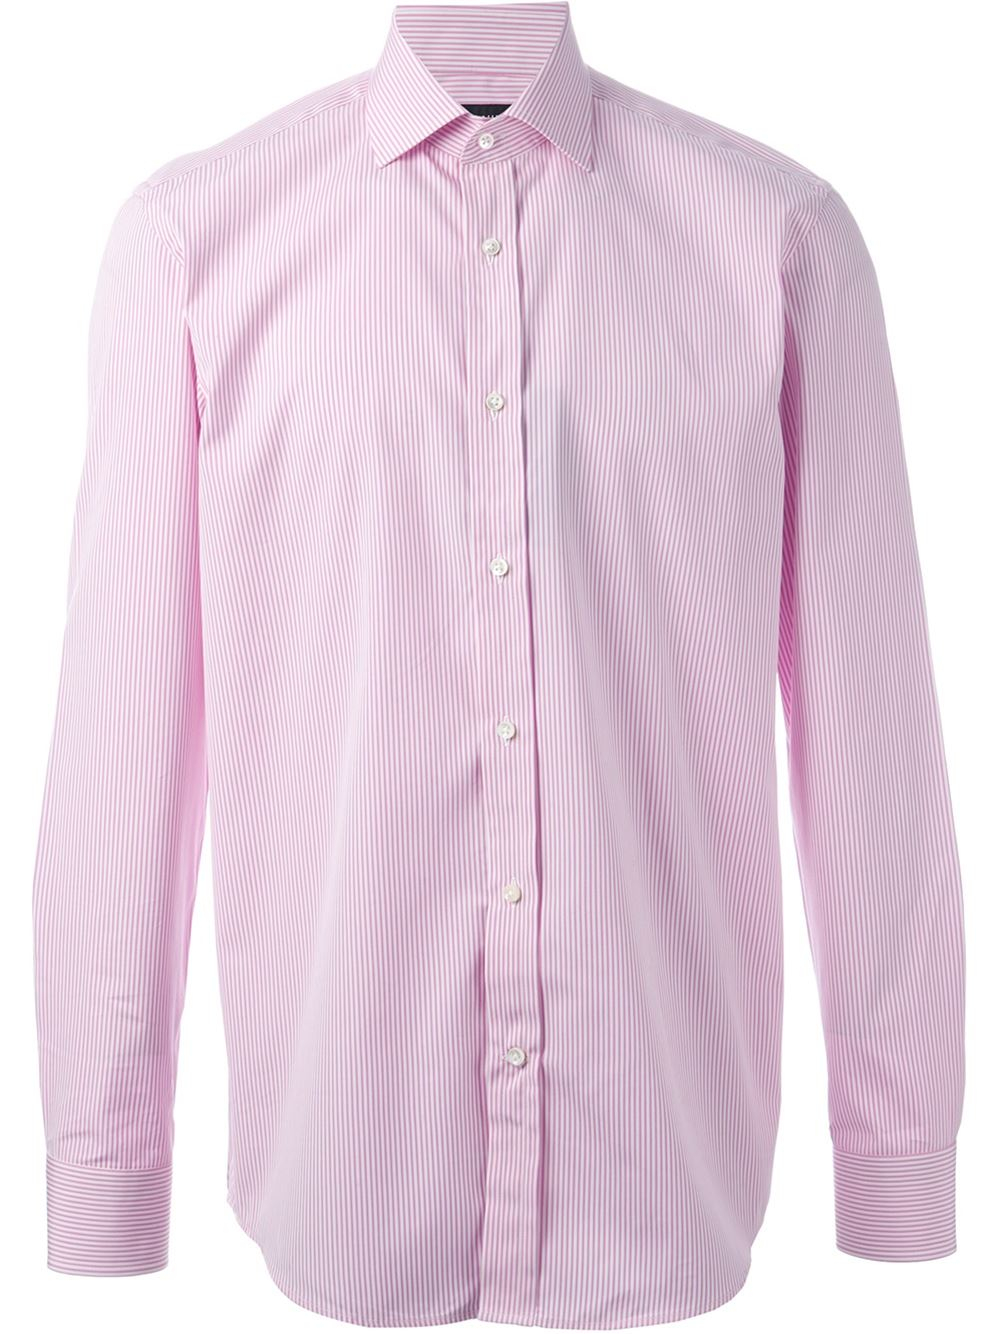 Ralph lauren striped shirt in purple for men pink for Pink white striped shirt